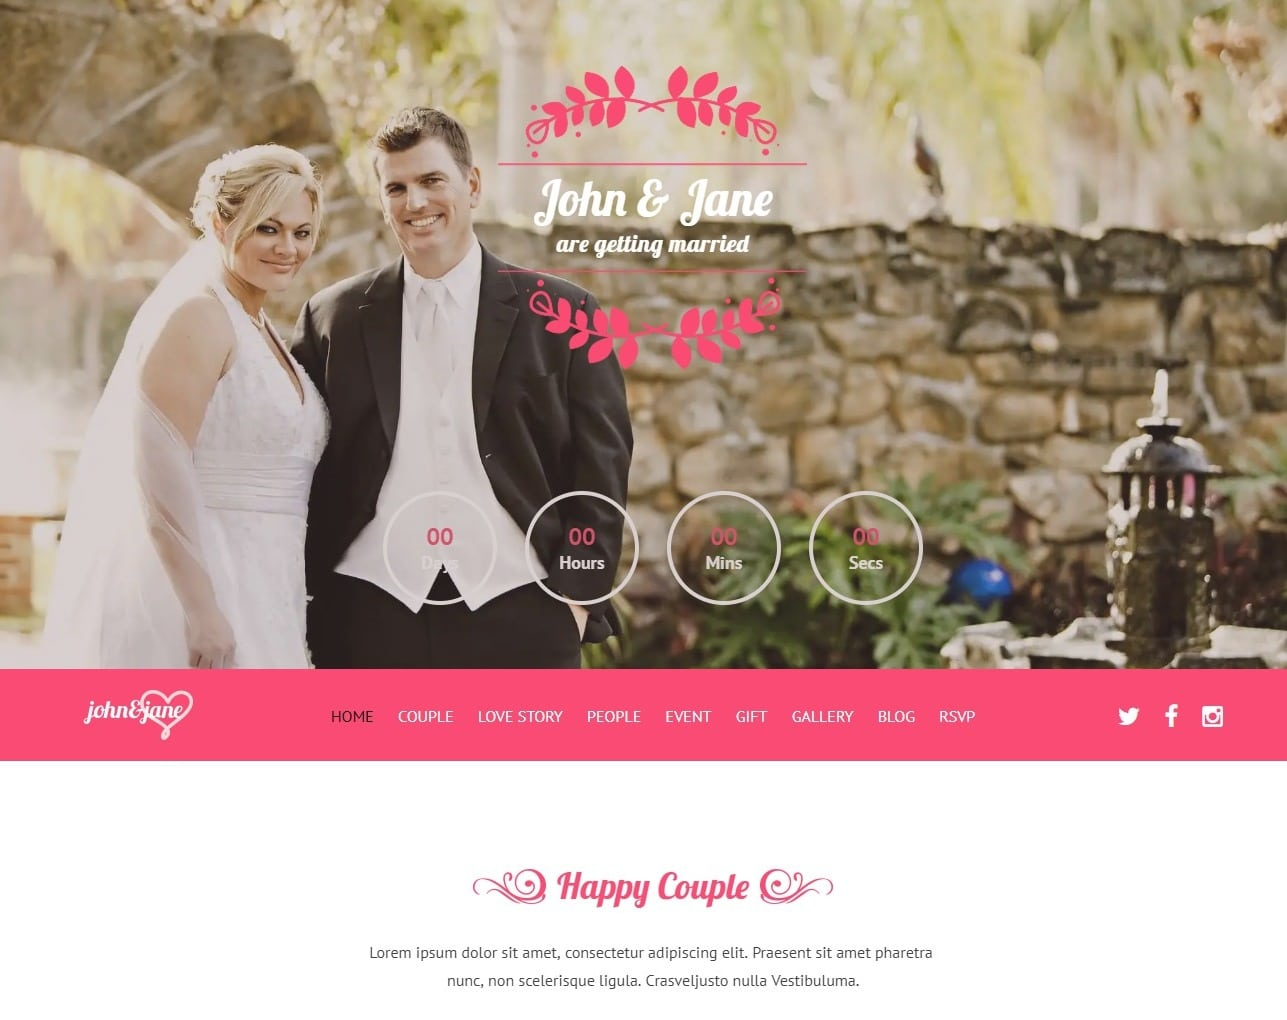 J&J wedding website template